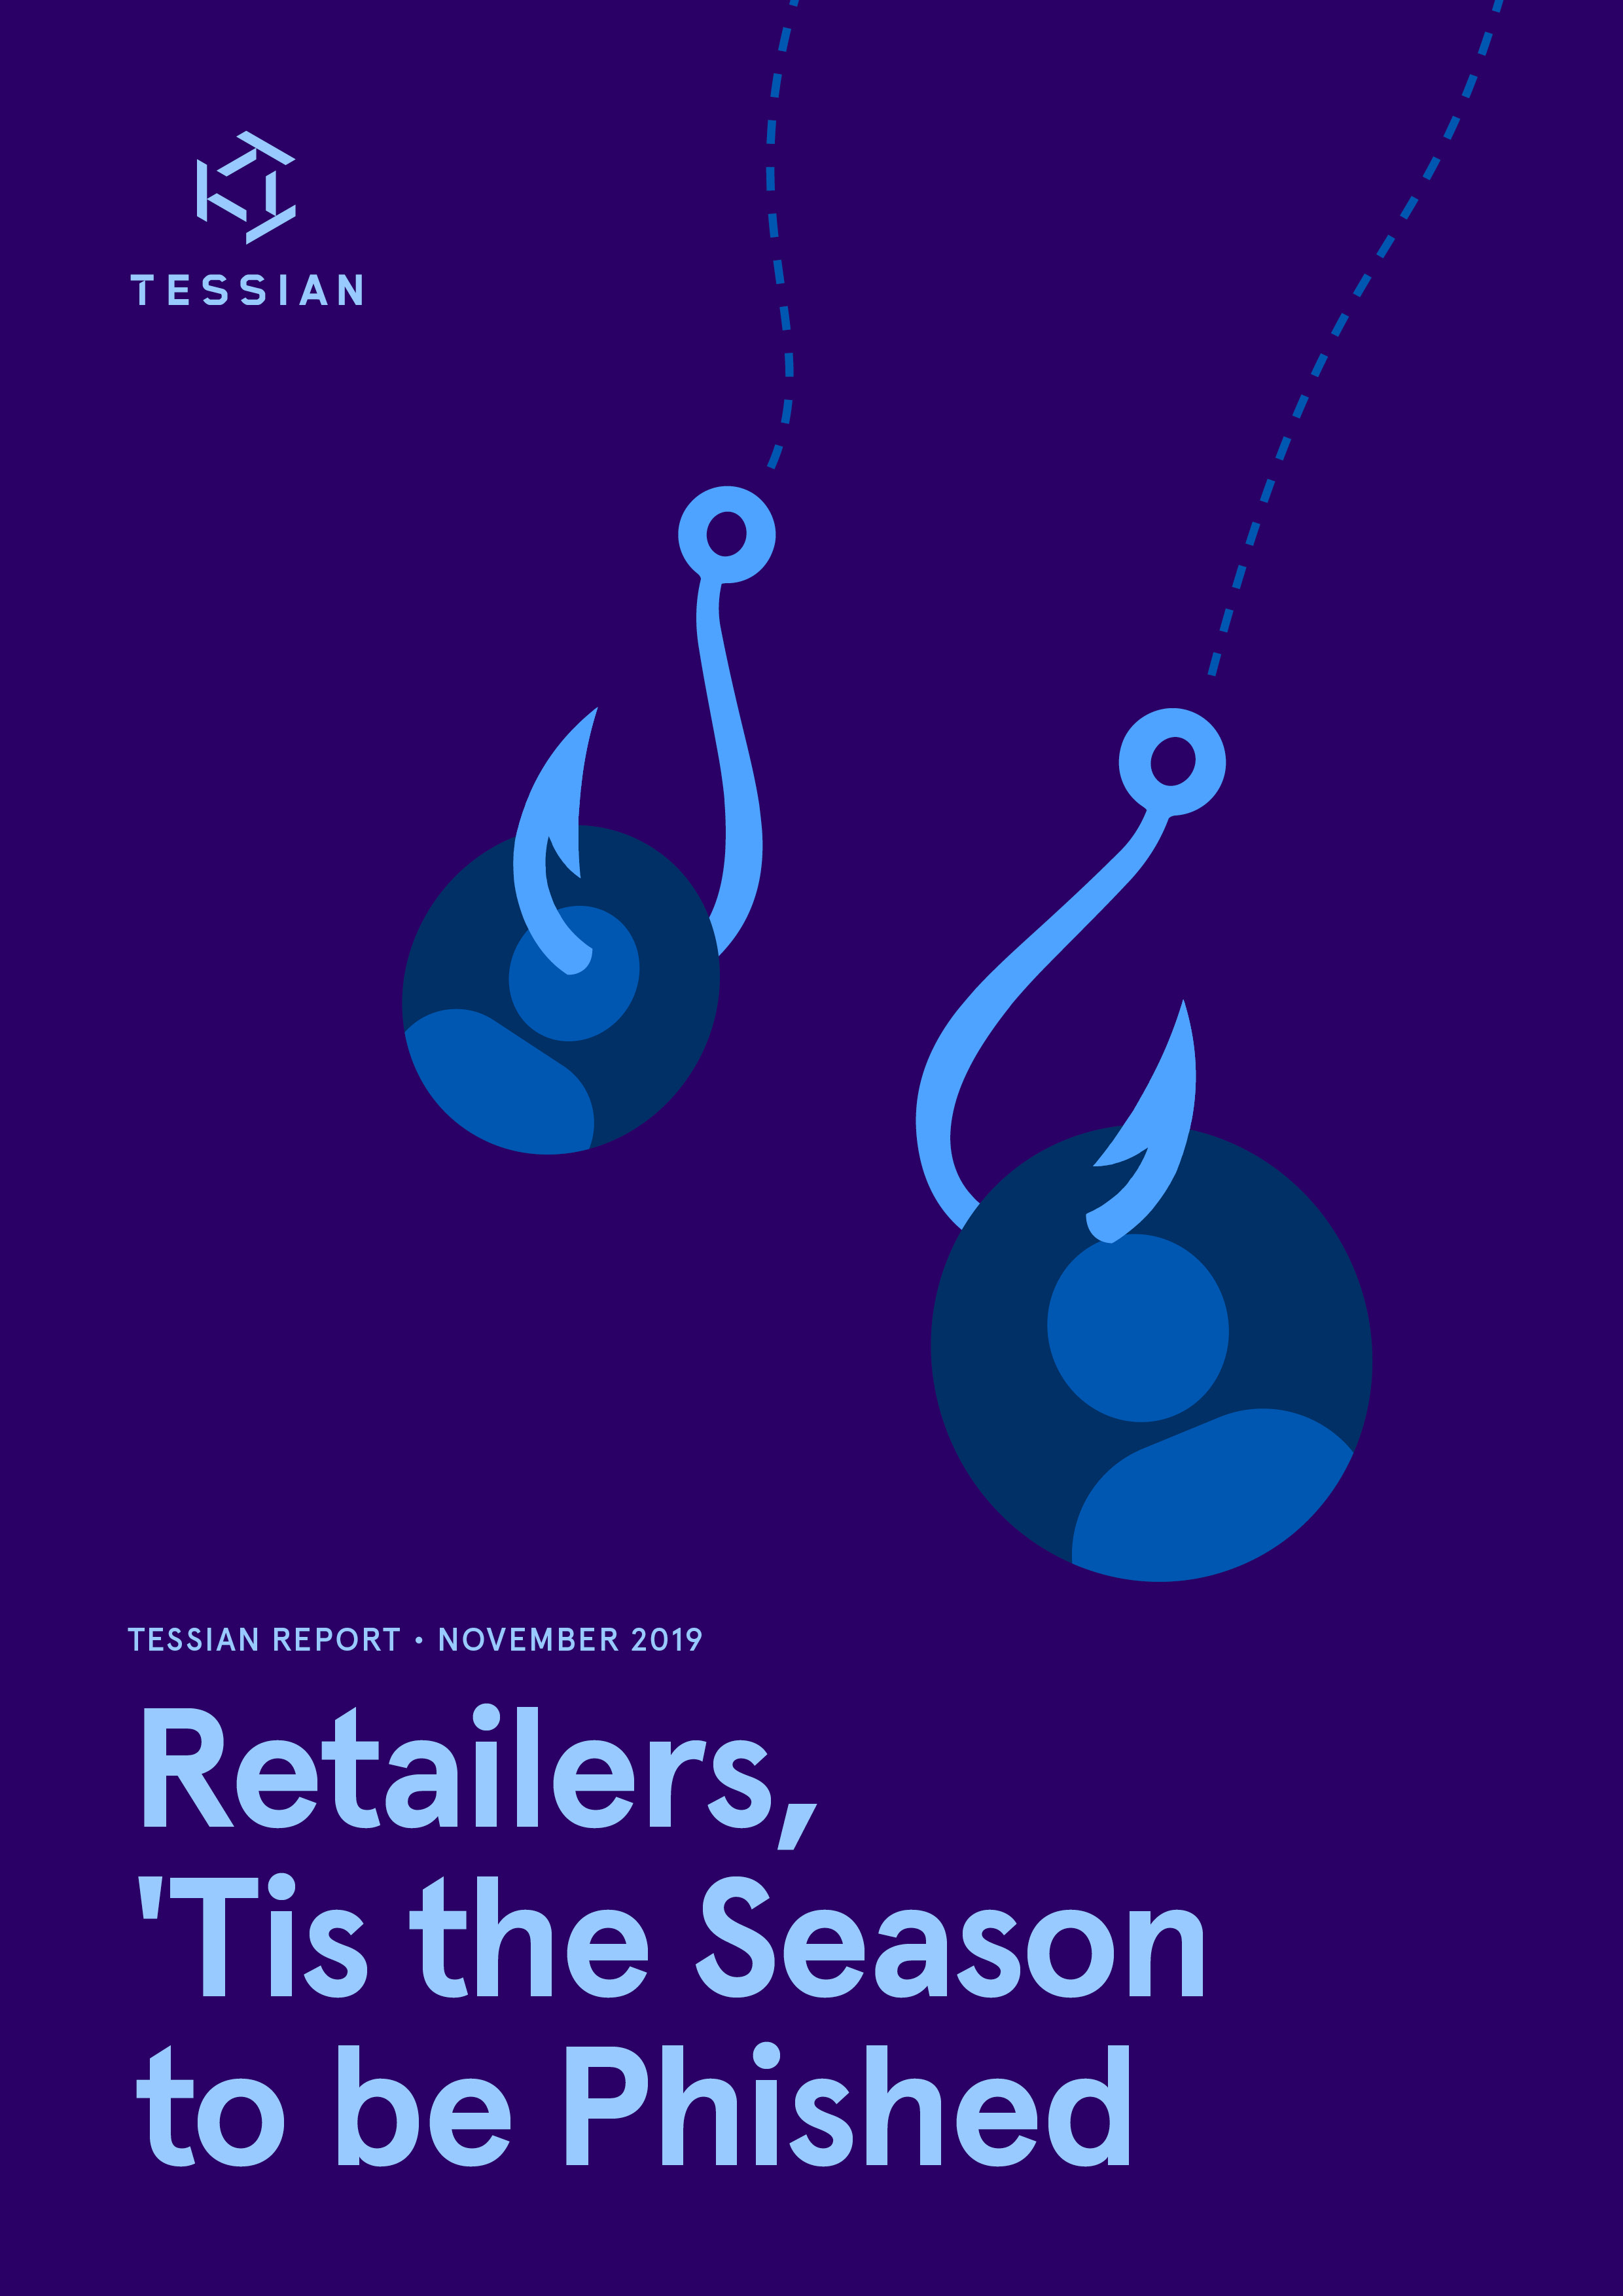 [Collateral][Report][Cover] Retailers, Tis the Season to be Phished